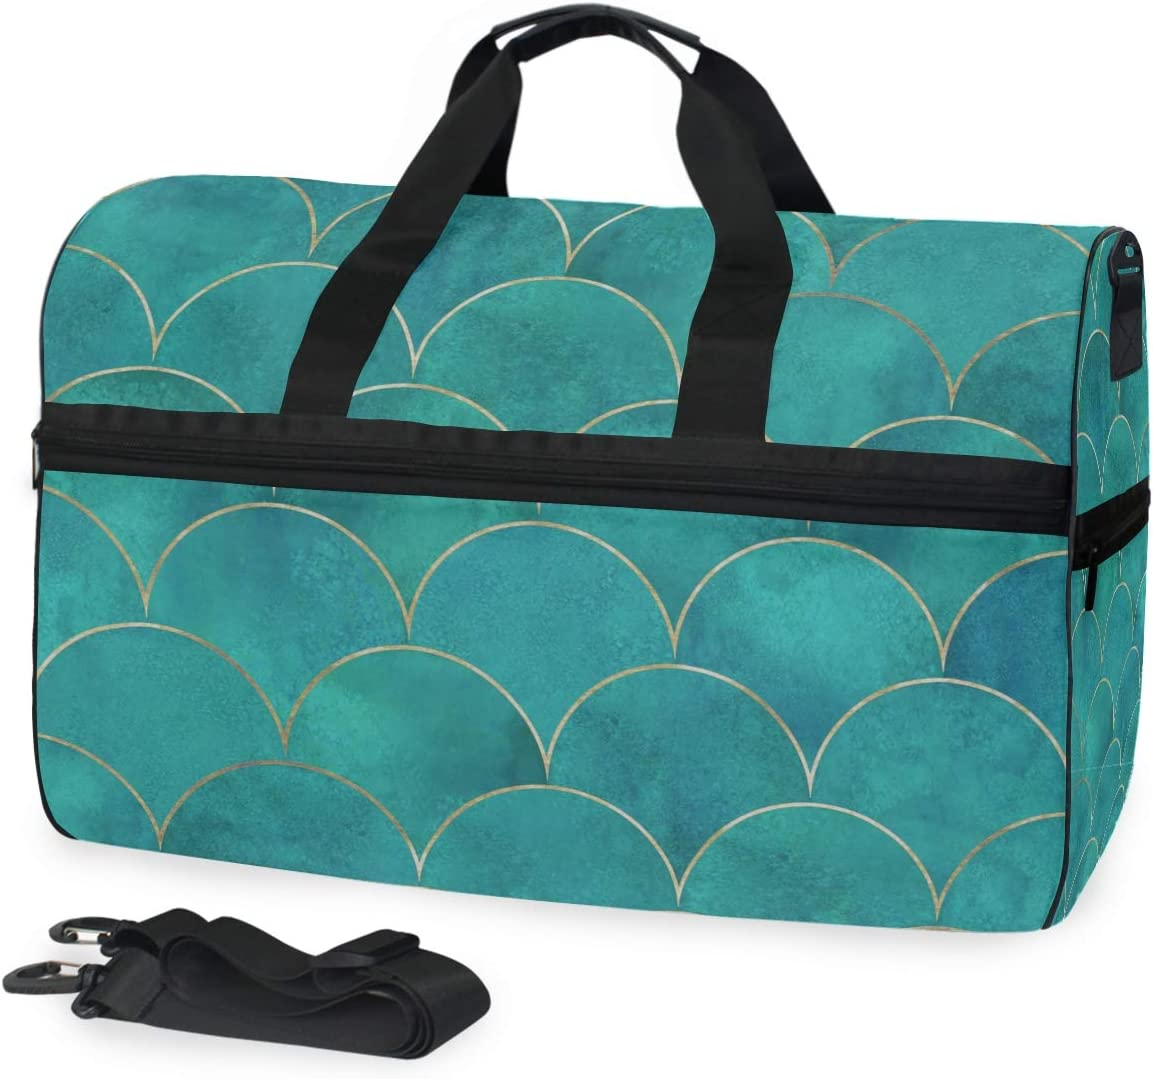 ALAZA Japanese Teal Mermaid Fish Scale Sports Gym Duffel Bag Travel Luggage Handbag Shoulder Bag with Shoes Compartment for Men Women